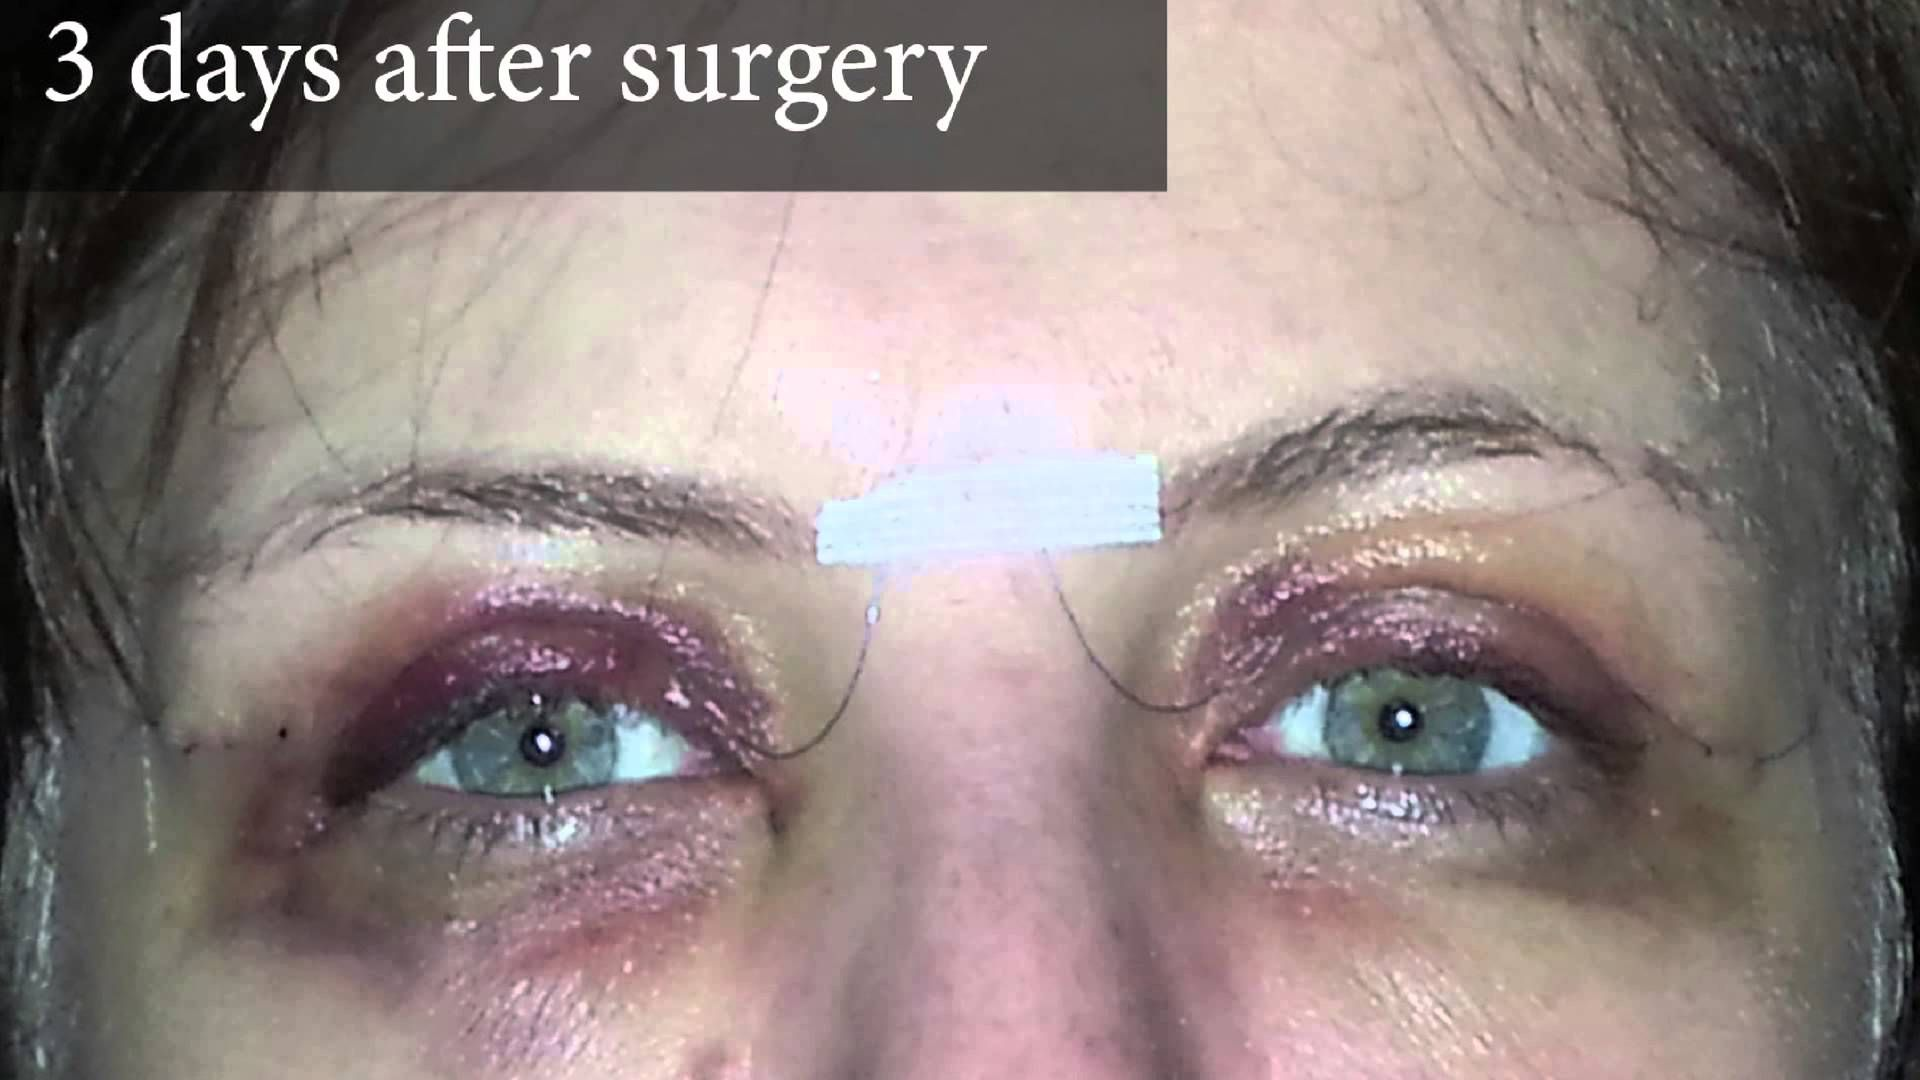 Eyes Brows Eyelid Surgery Brow Lift Surgery Eyelid Surgery